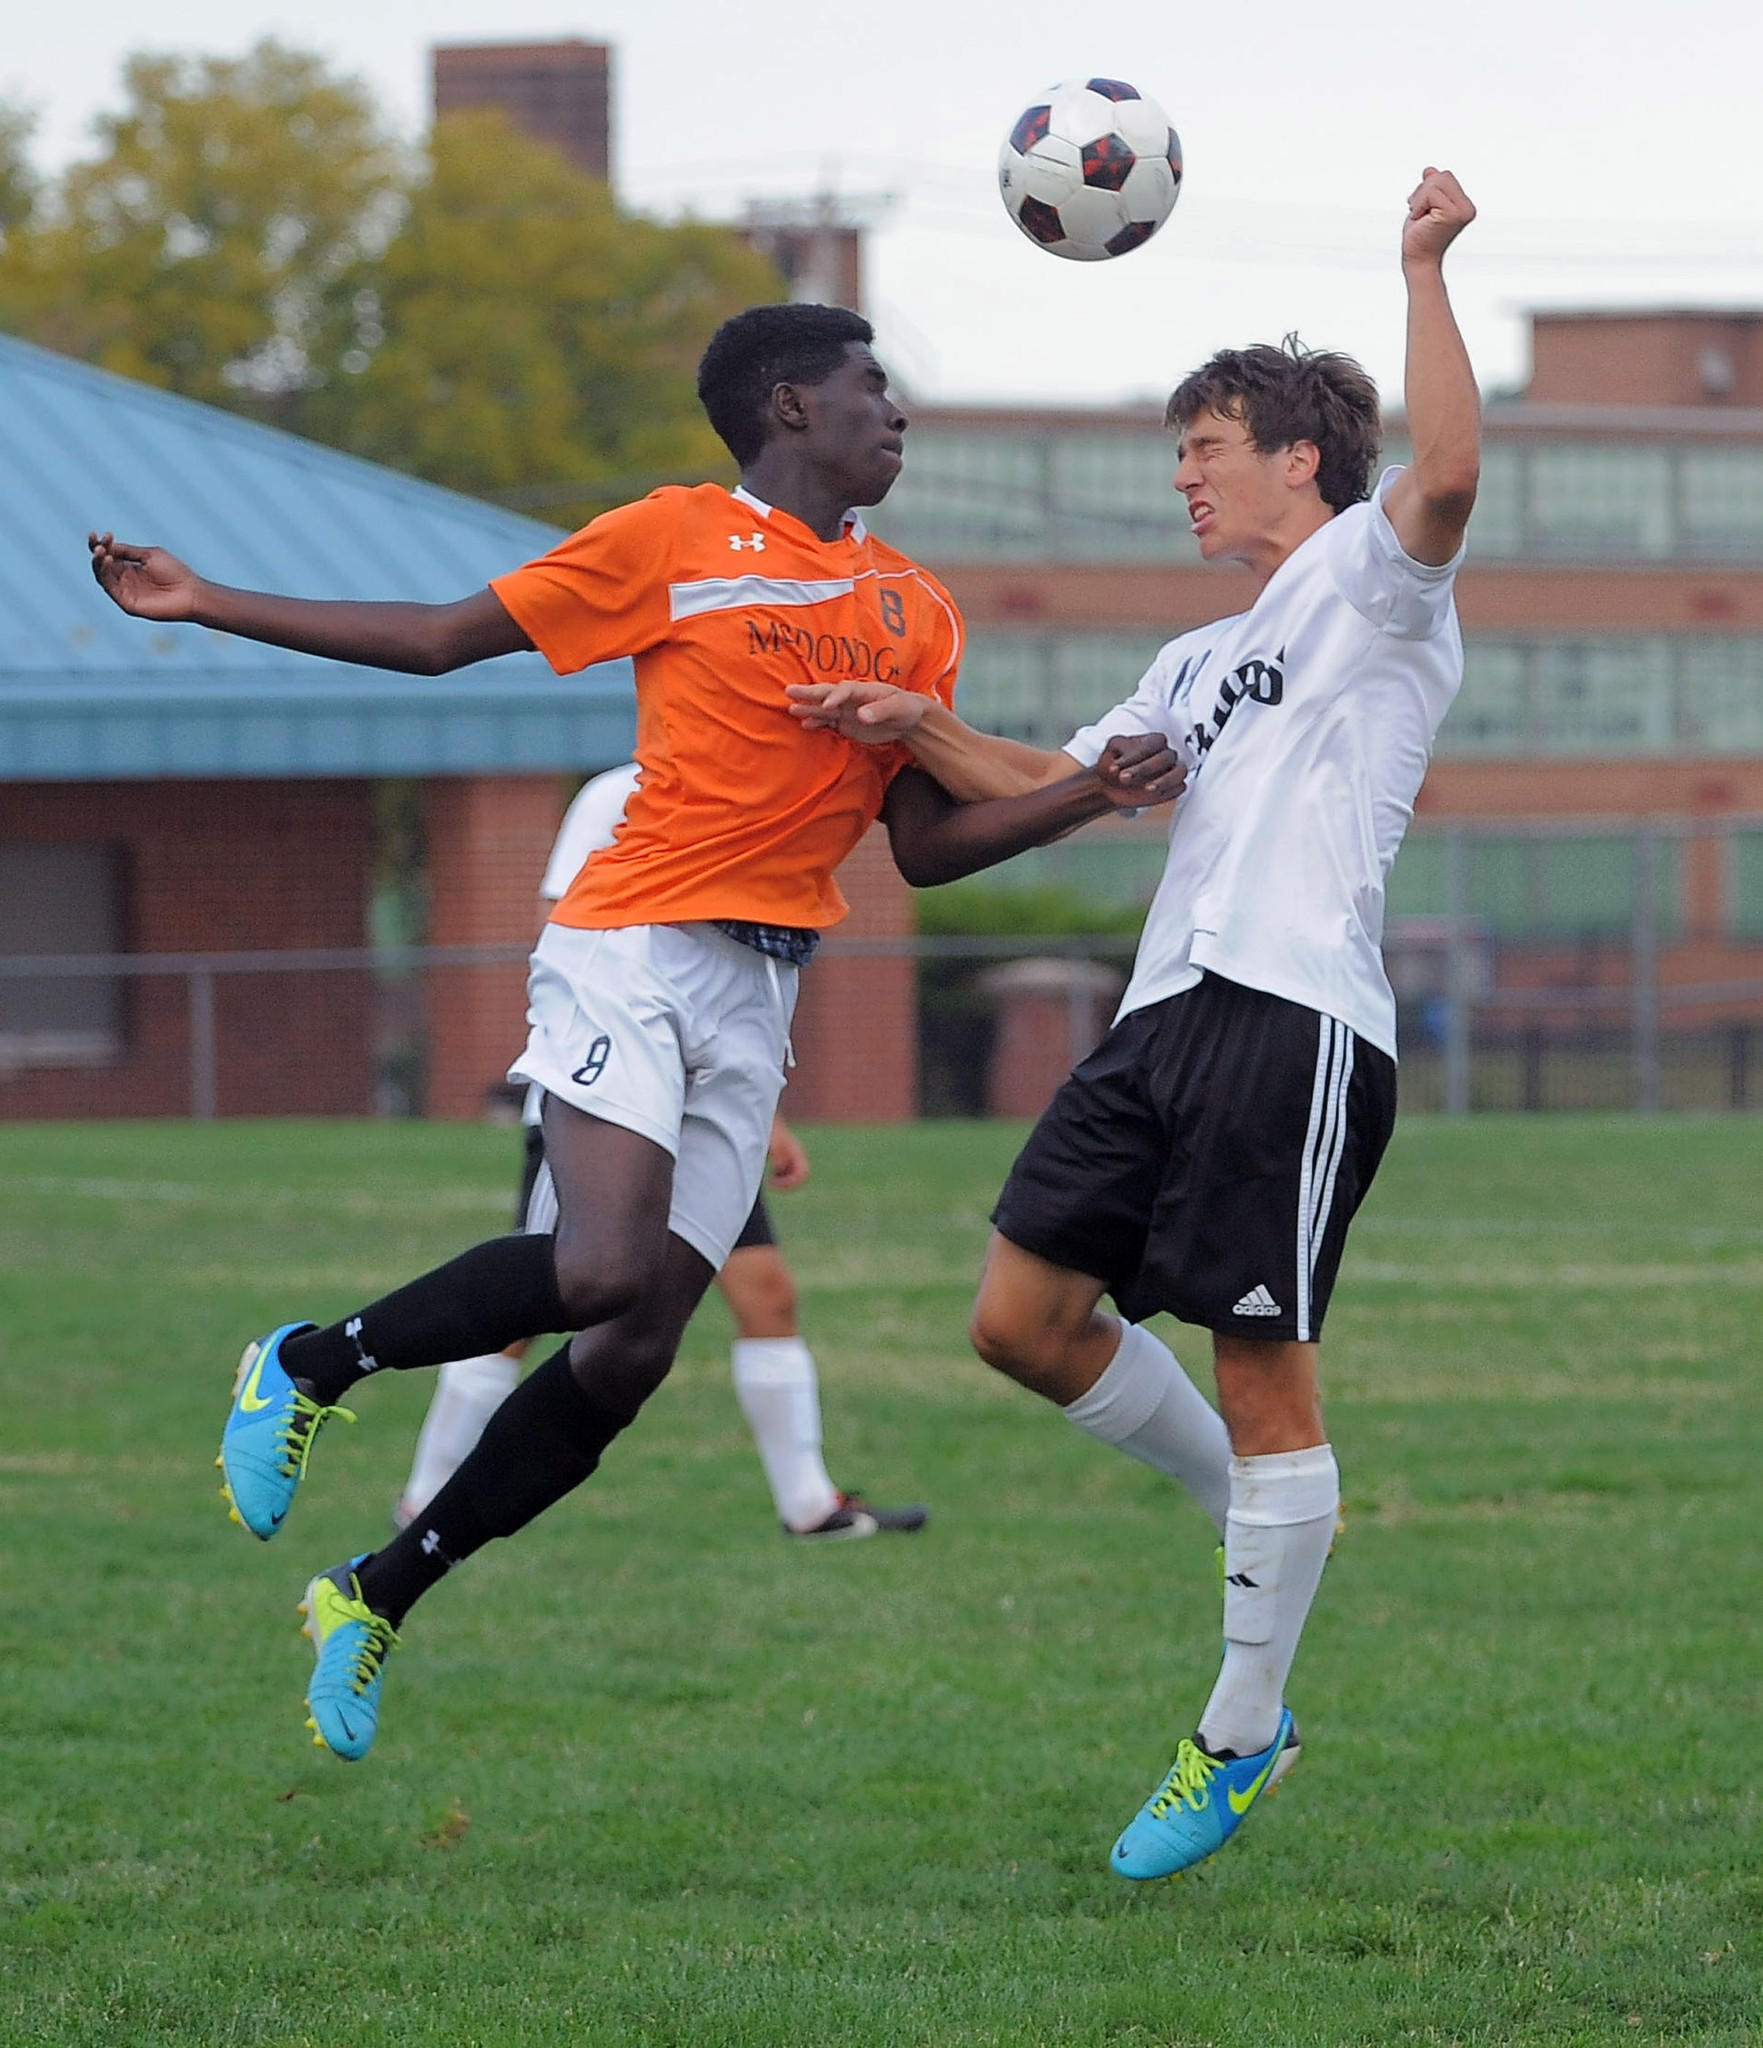 McDonogh Eagles forward Aquinas (Tunde) Akinlosotu and Archbishop Curley Friars back Tyler Ihle both leap to head the ball.